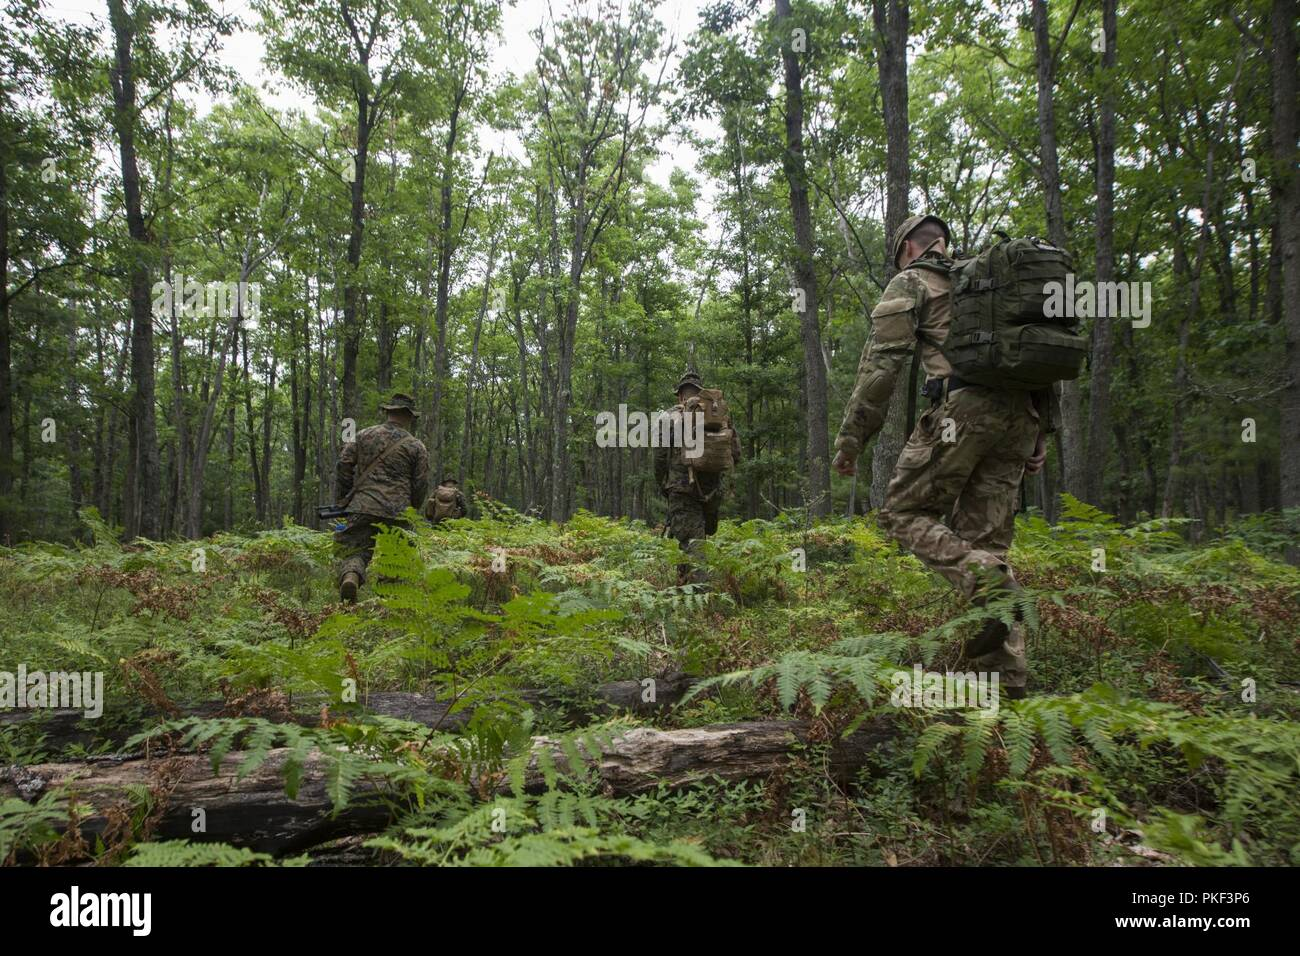 Medics of the forest: which representatives of the animal world clean the nature 79